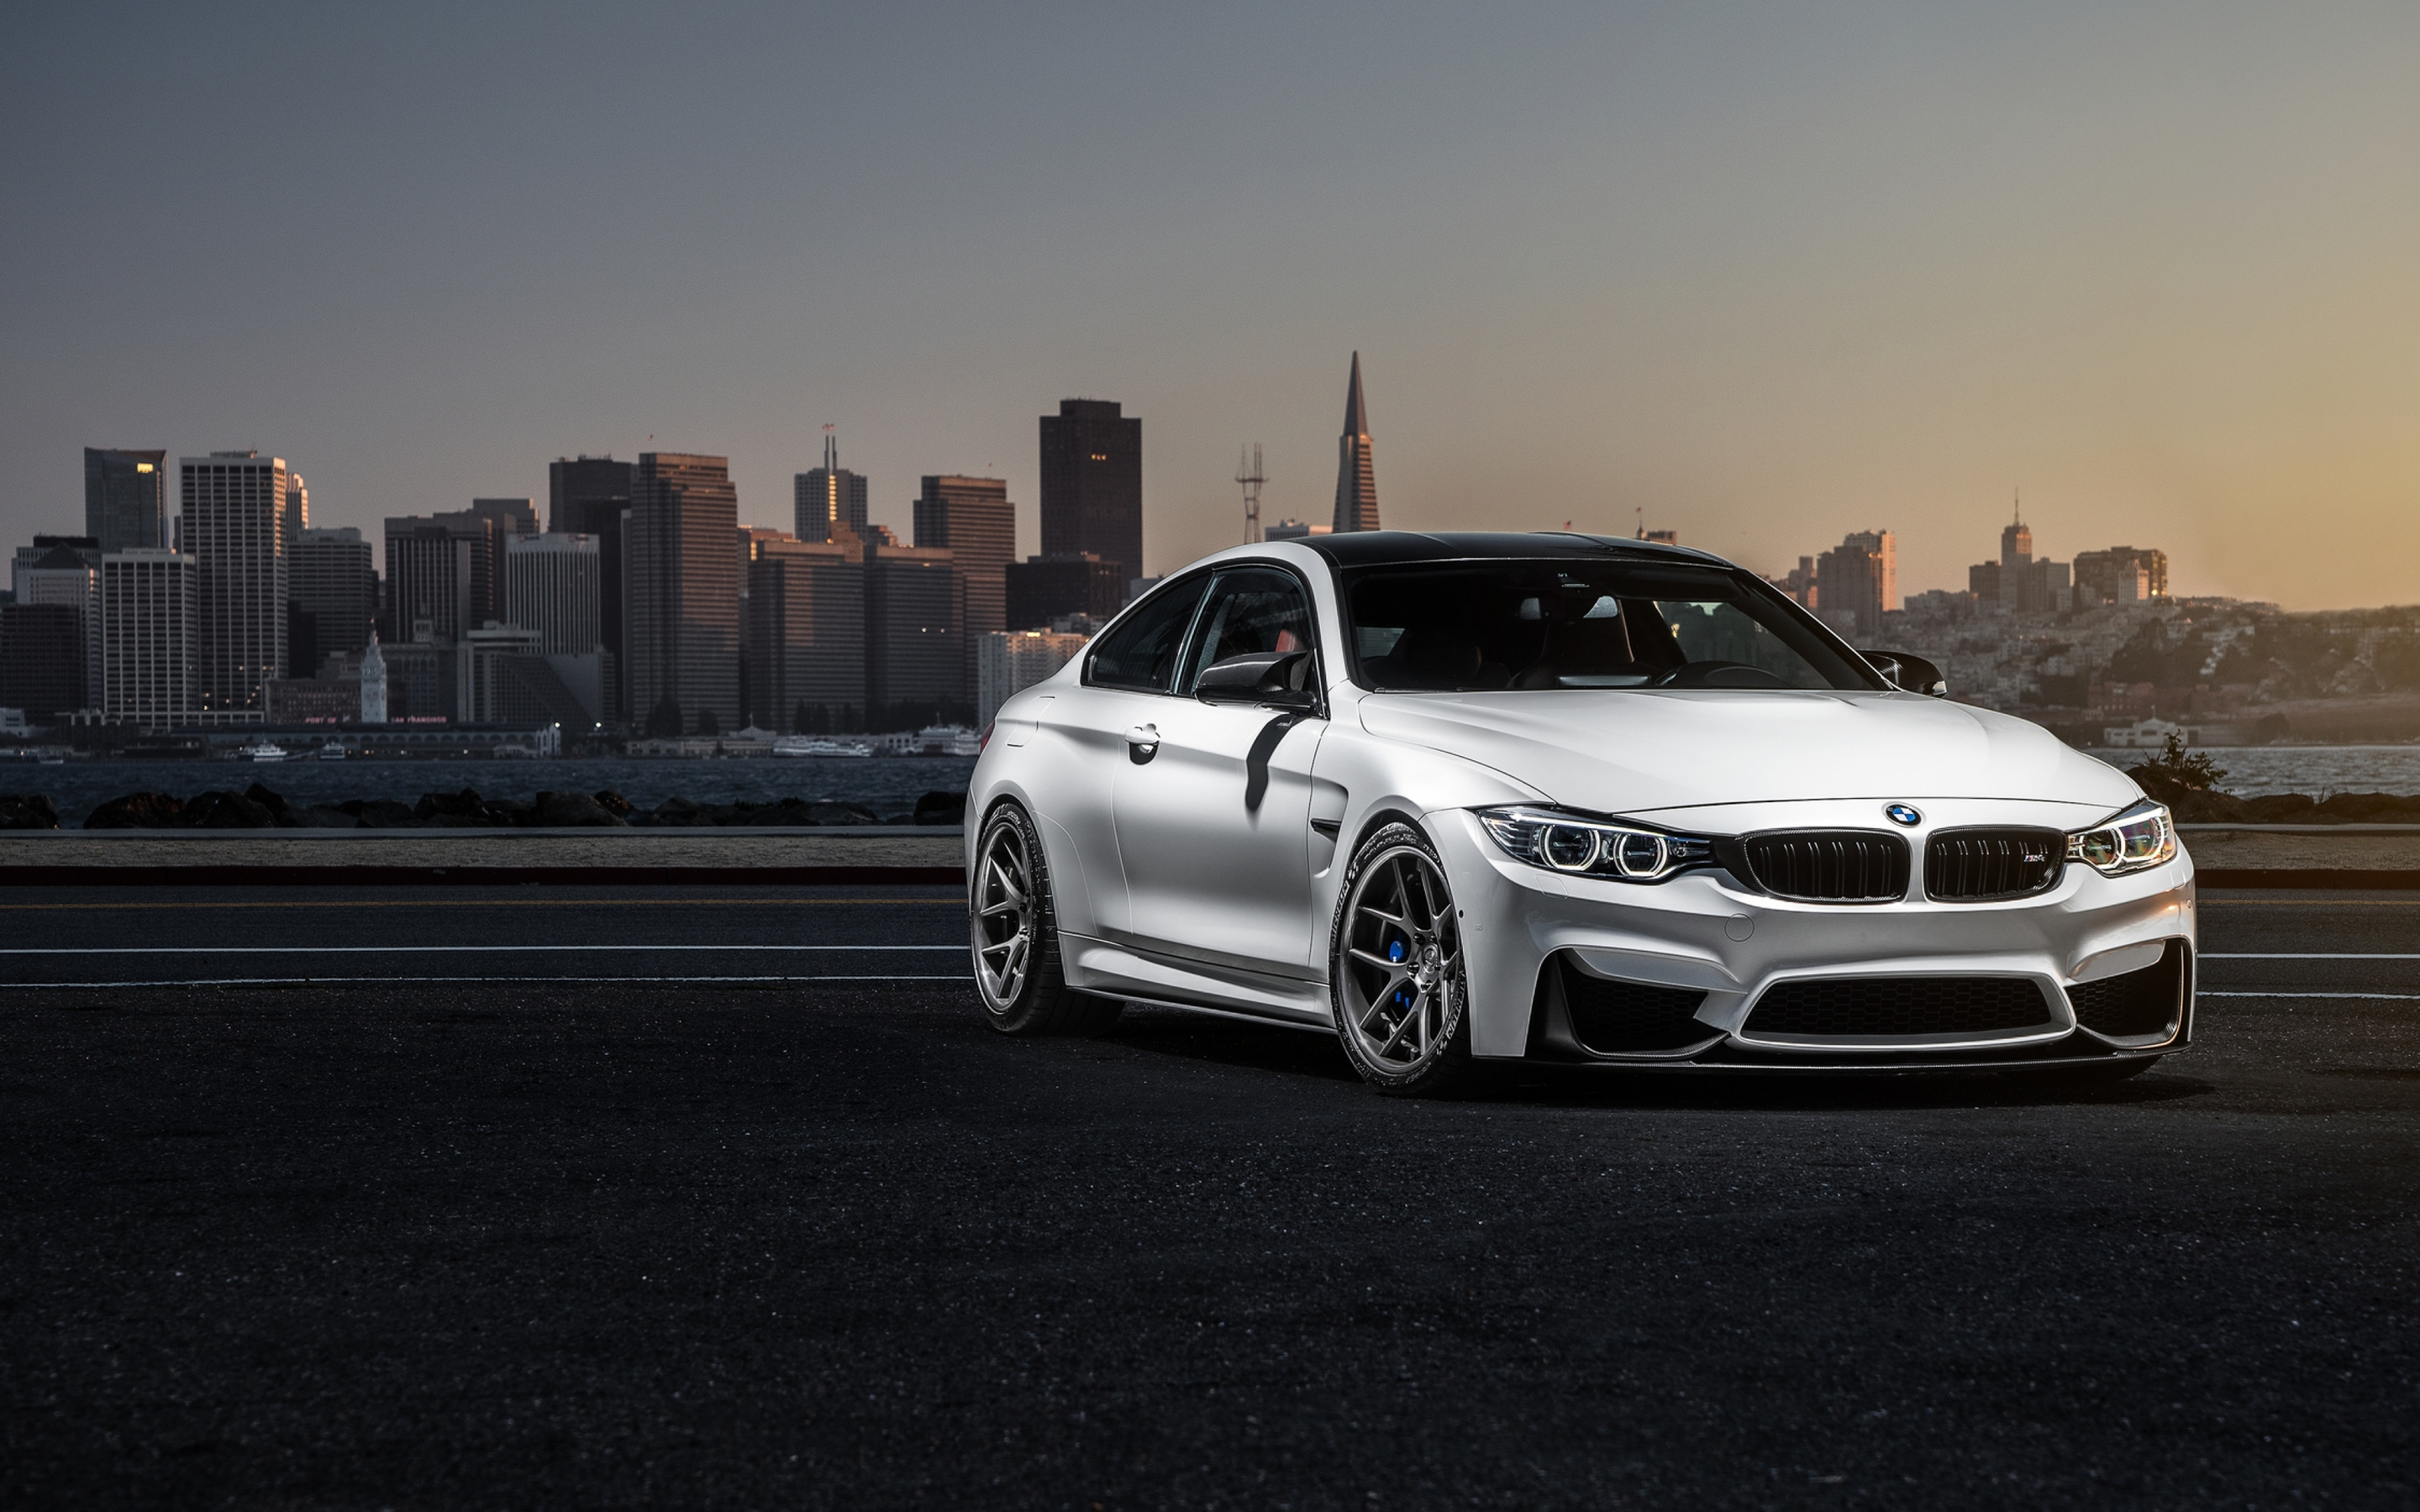 2880x1800 - BMW M4 Wallpapers 6